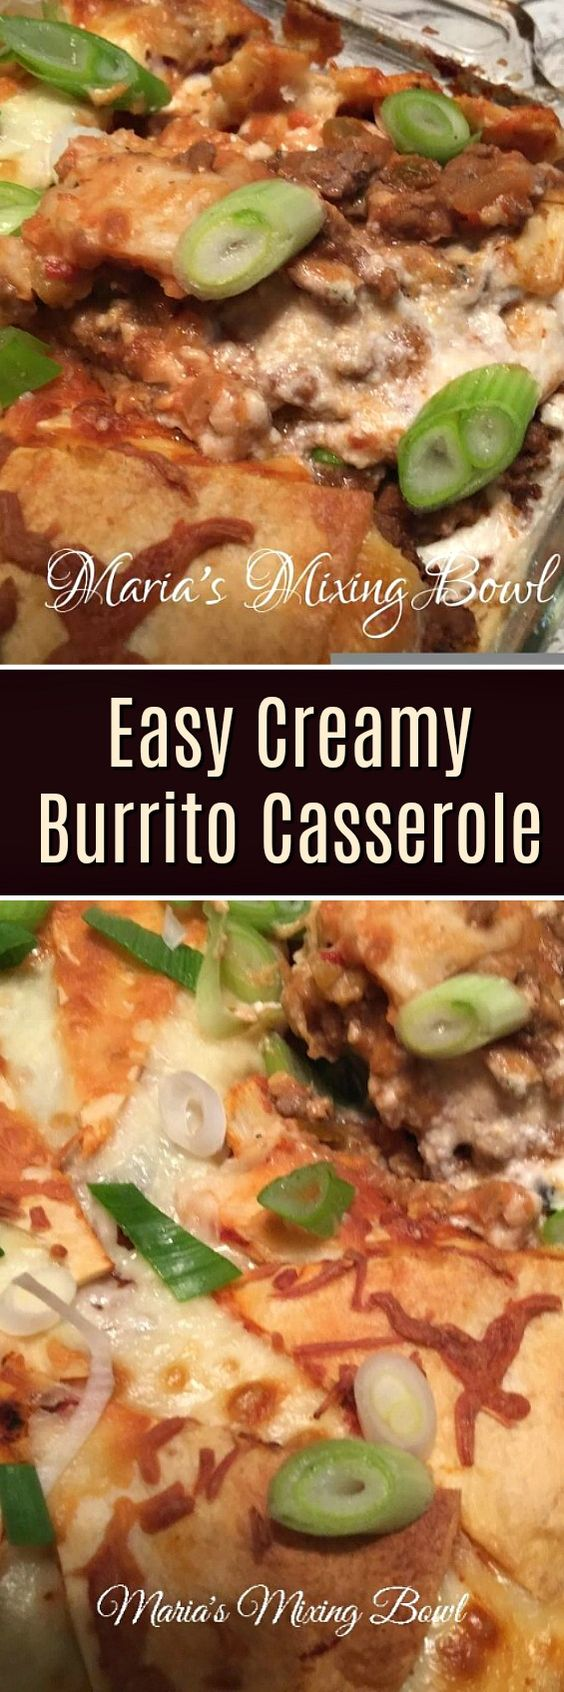 Easy Creamy Burrito Casserole - This easy casserole recipe is filled with ground beef and loaded with cheese. It's a one dish meal your family will love.